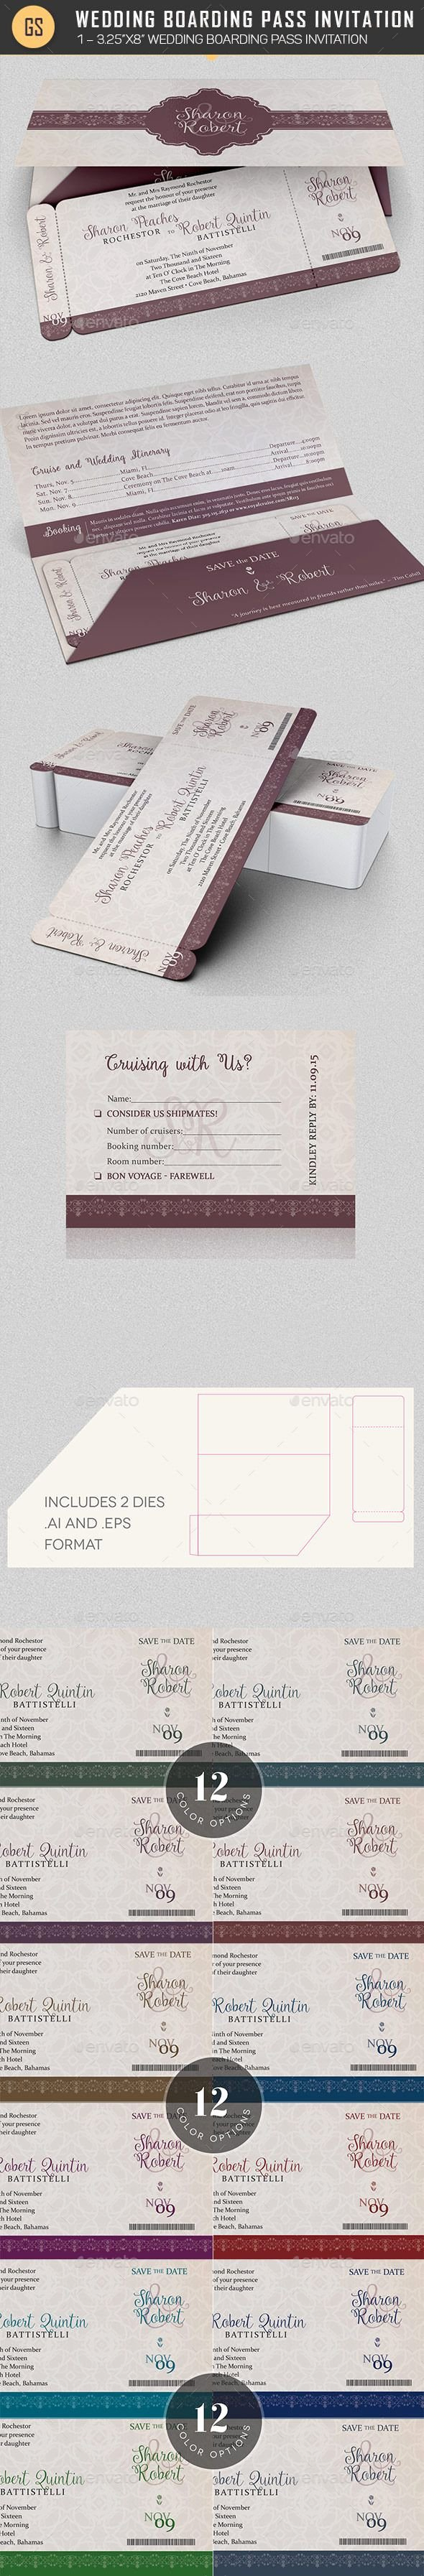 Boarding Pass Template Photoshop Luxury Pin by Bashooka Web & Graphic Design On Wedding Invitation